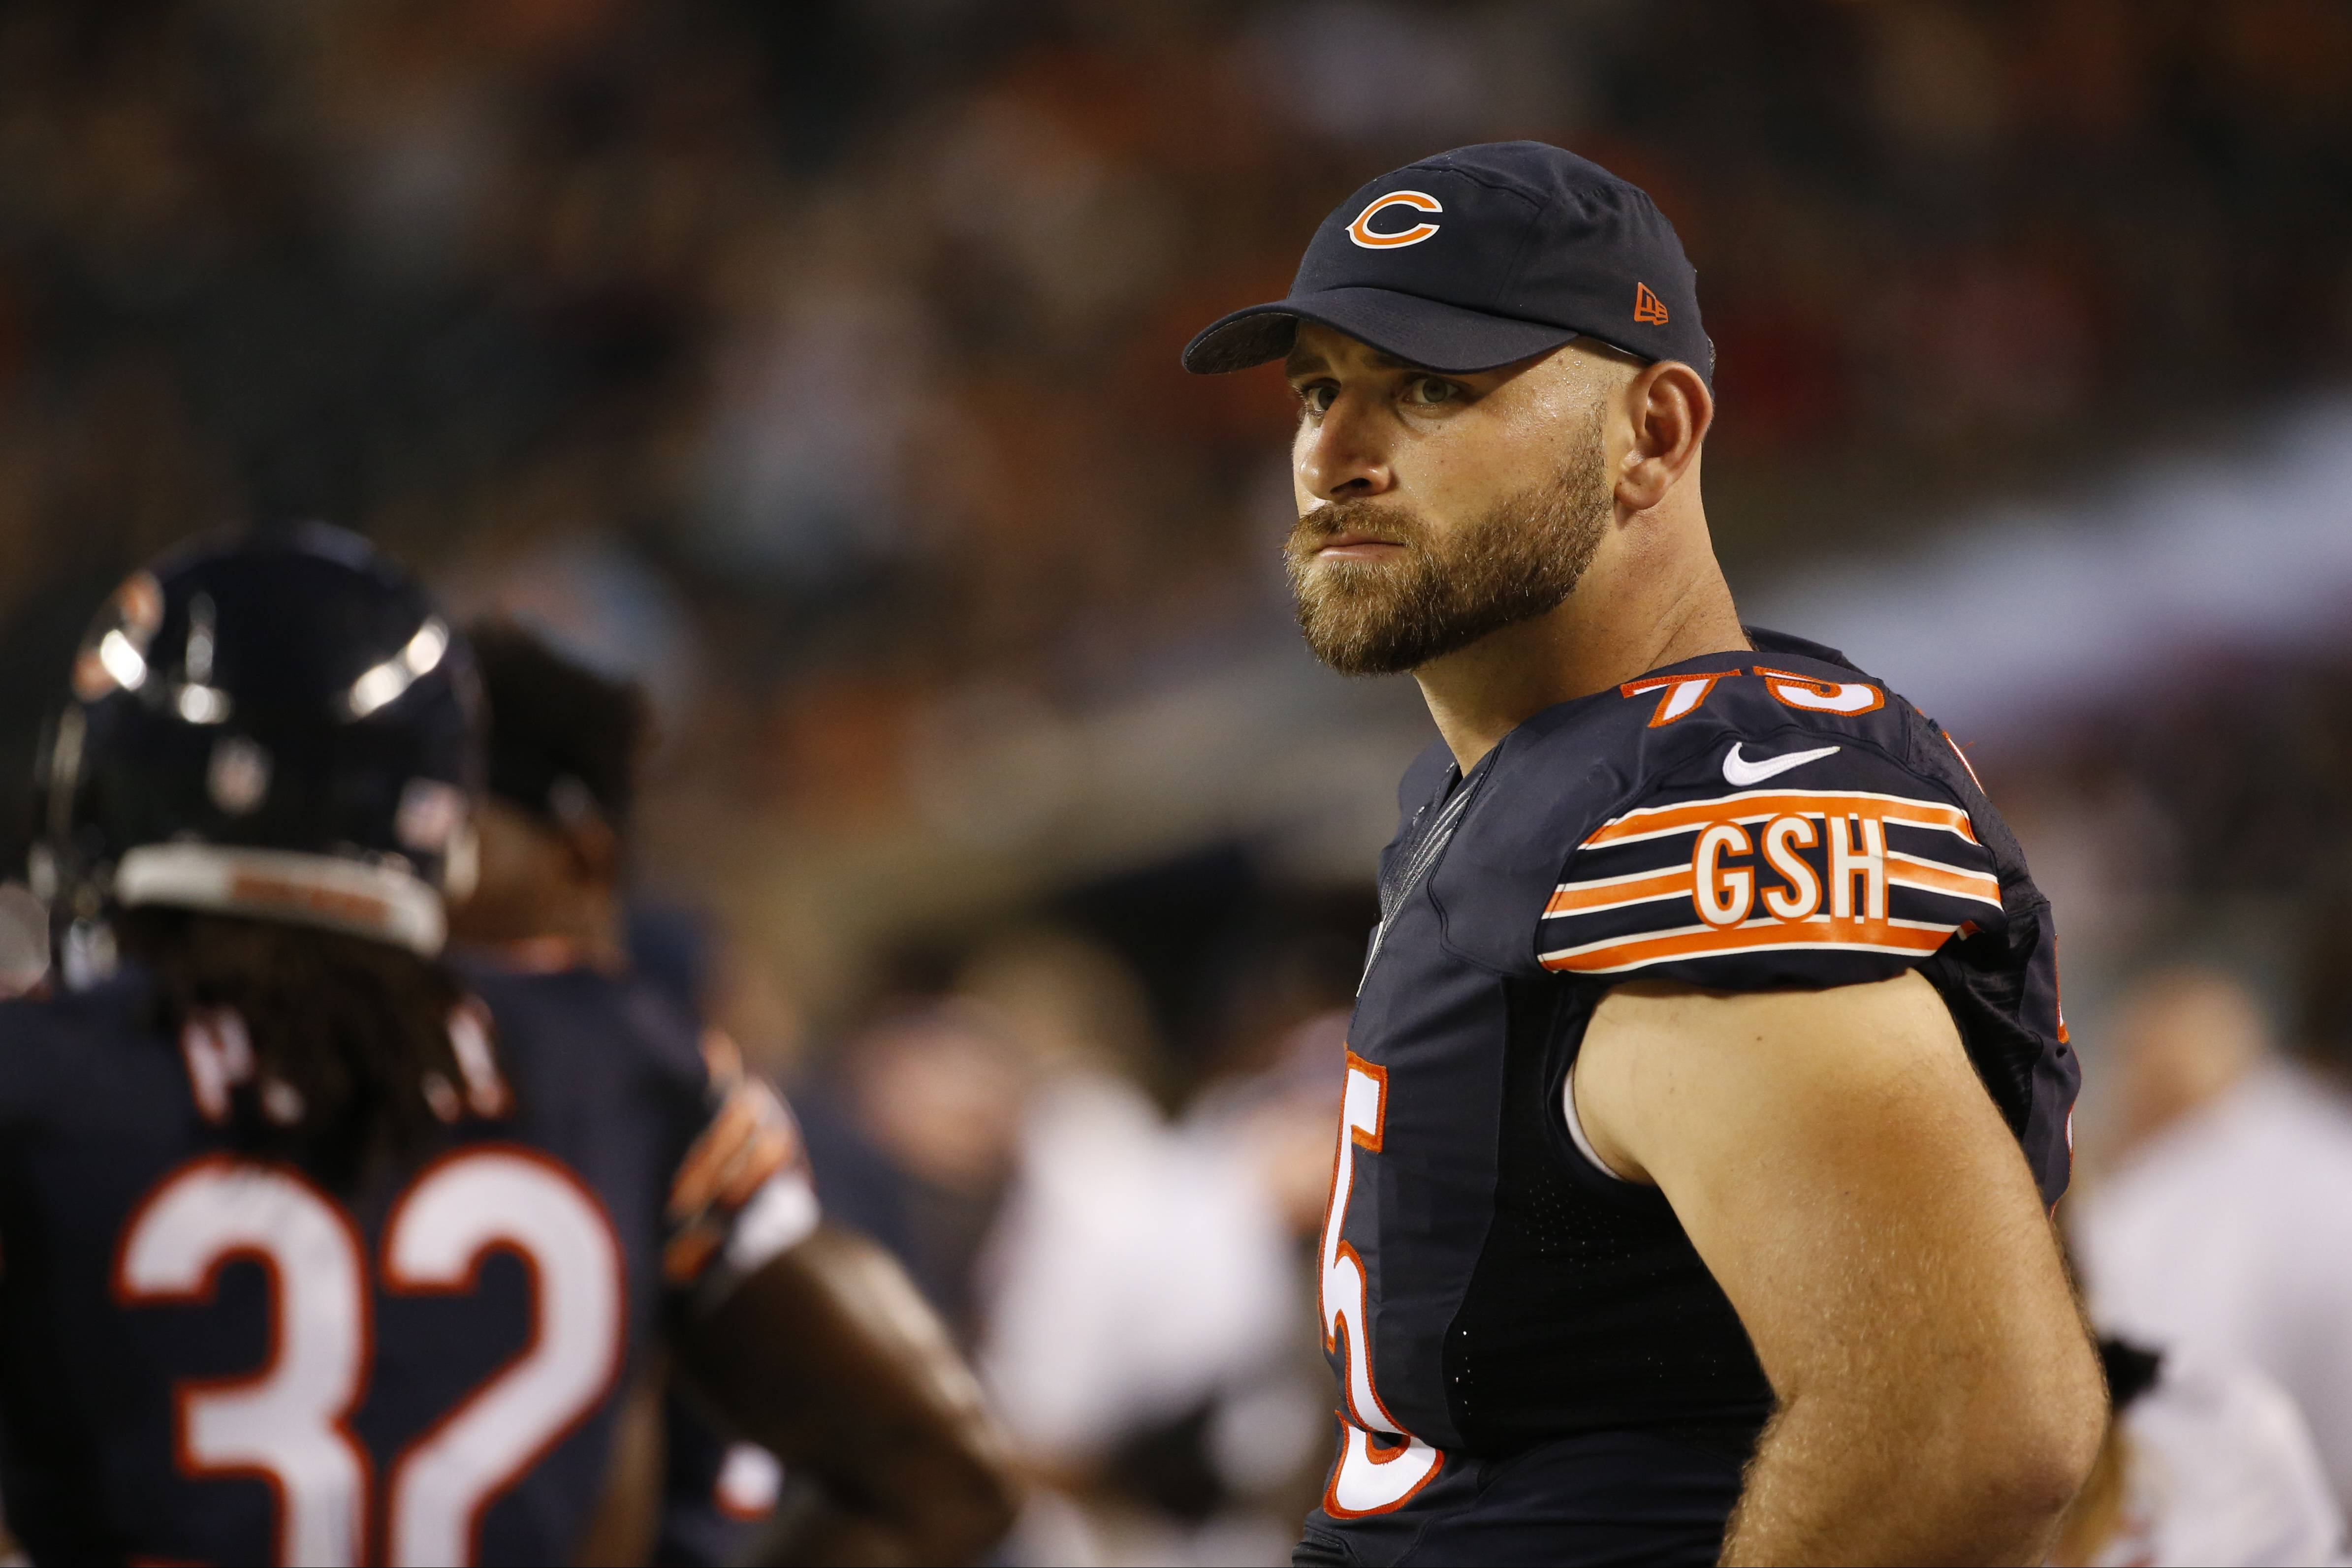 Kyle Long's absence from the Bears' first practice back at Halas Hall on Wednesday raised eyebrows and questions.